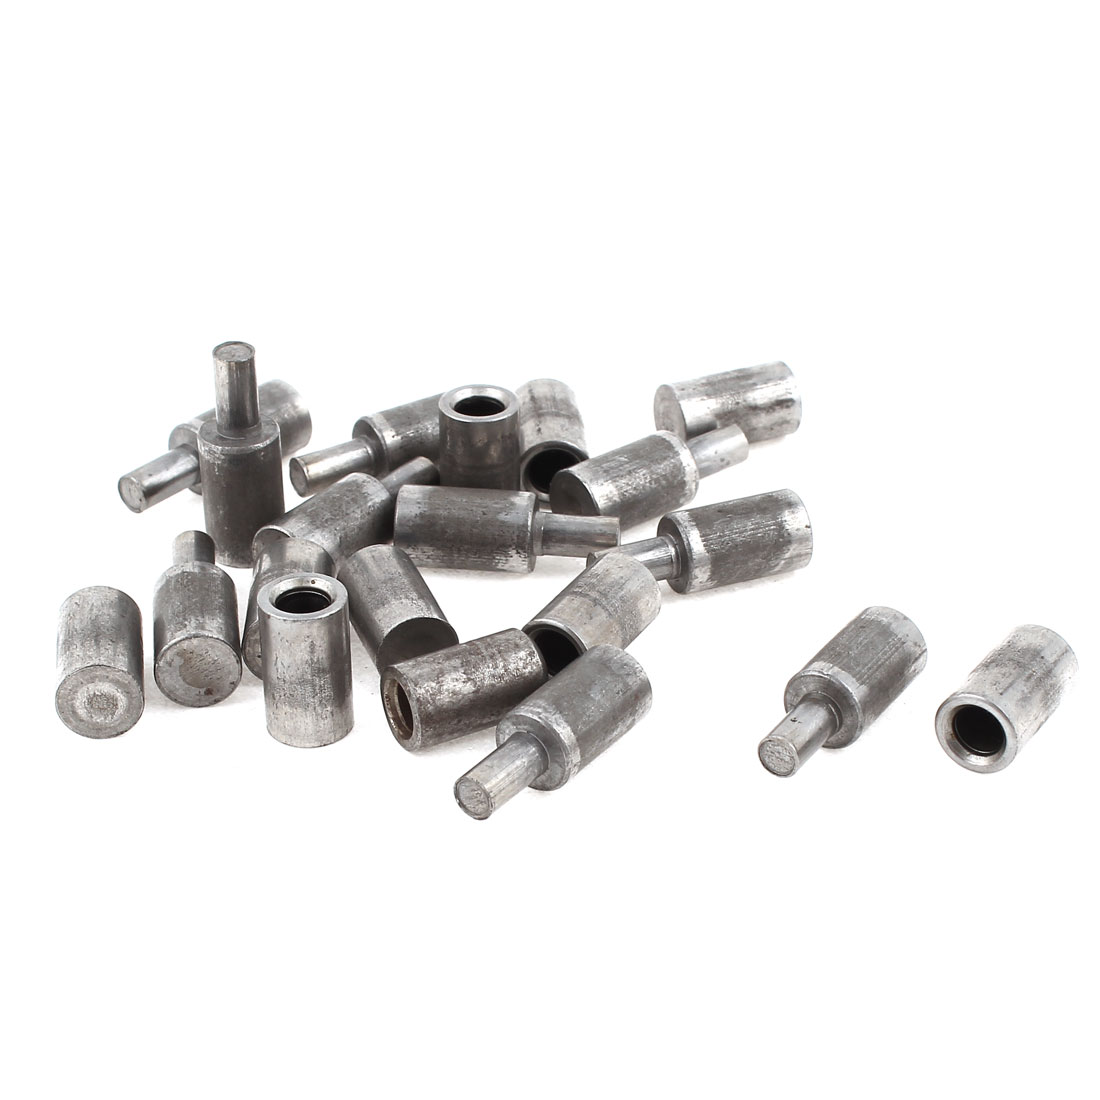 10 Pairs Home Door Window Part Male to Female M/F Cylinder Shaped Metal Grease Hinge Pin 32mm x 9mm